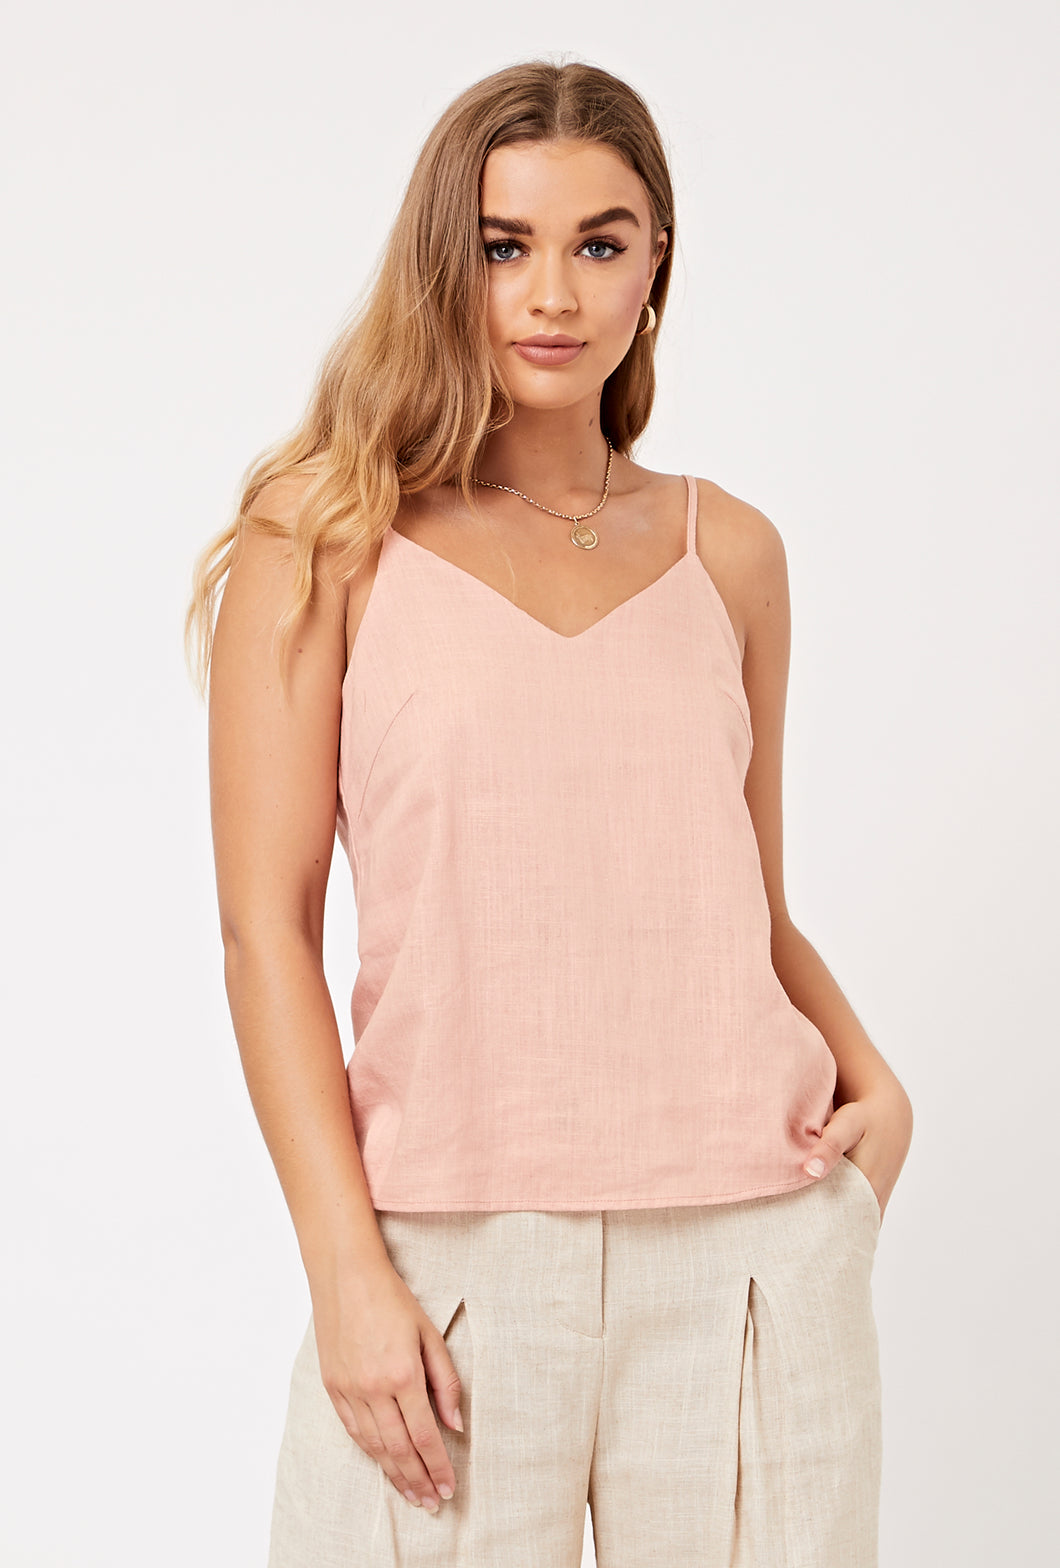 Easy Breezy Tank: Bermuda